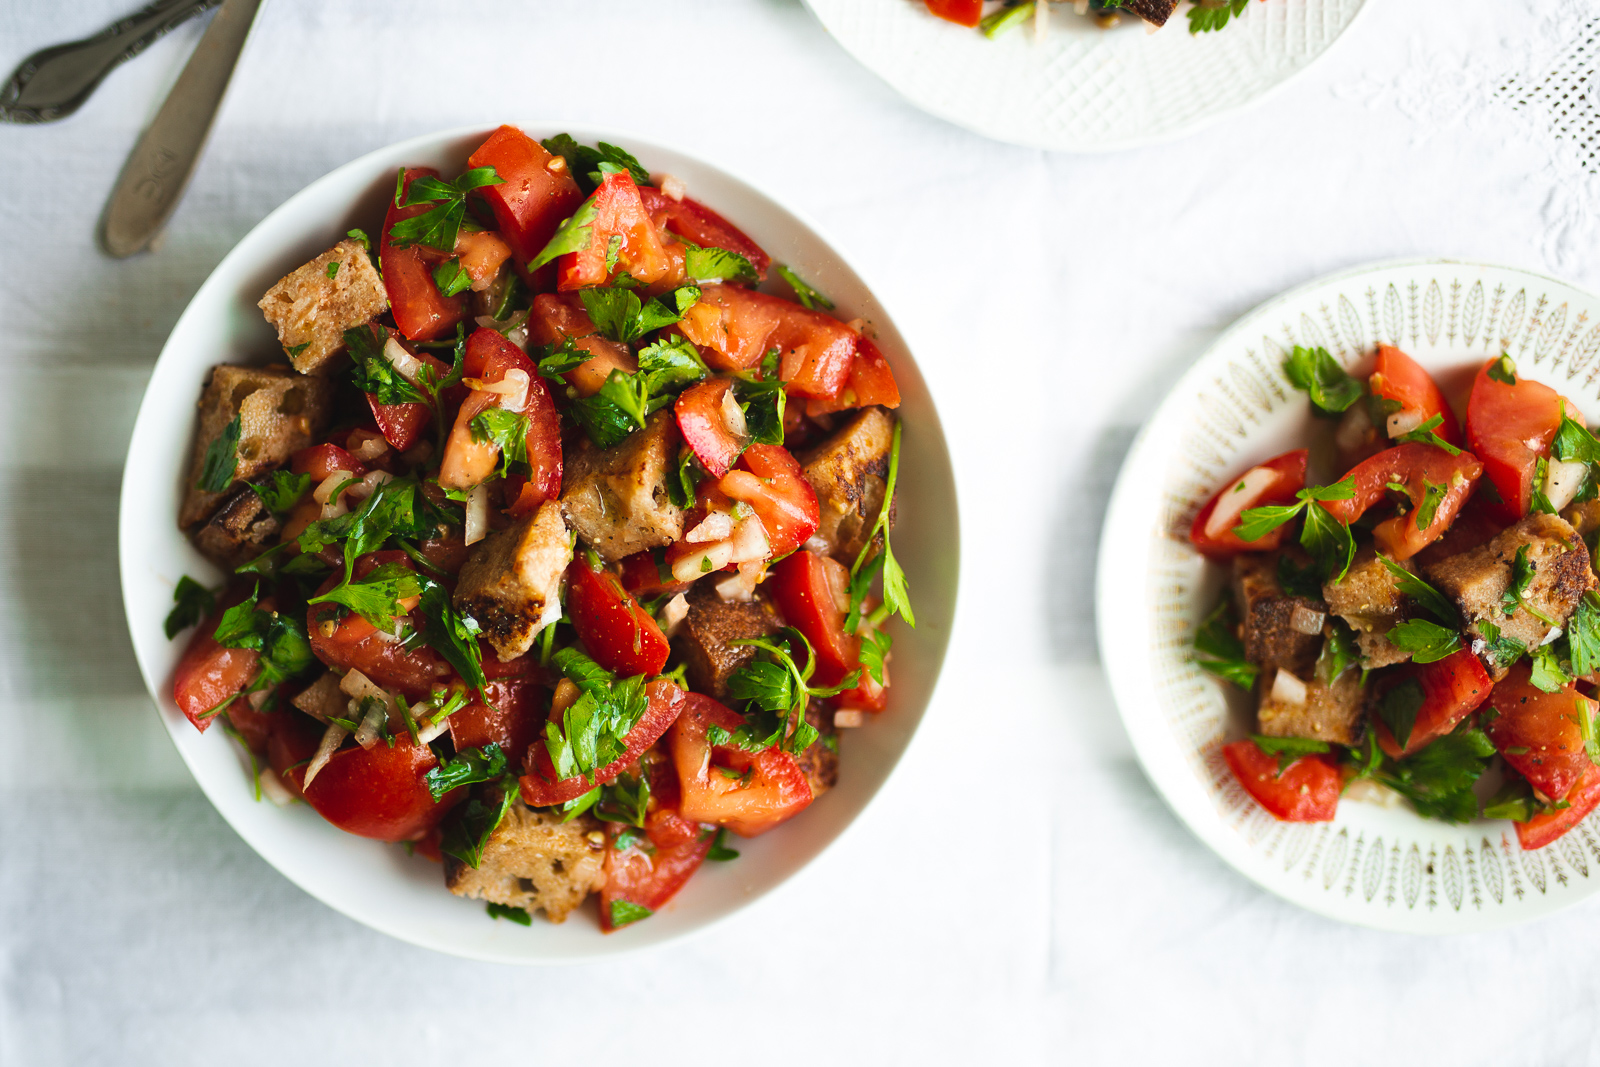 Panzanella: a Tuscan tomato and bread salad with onion and fresh parsley.